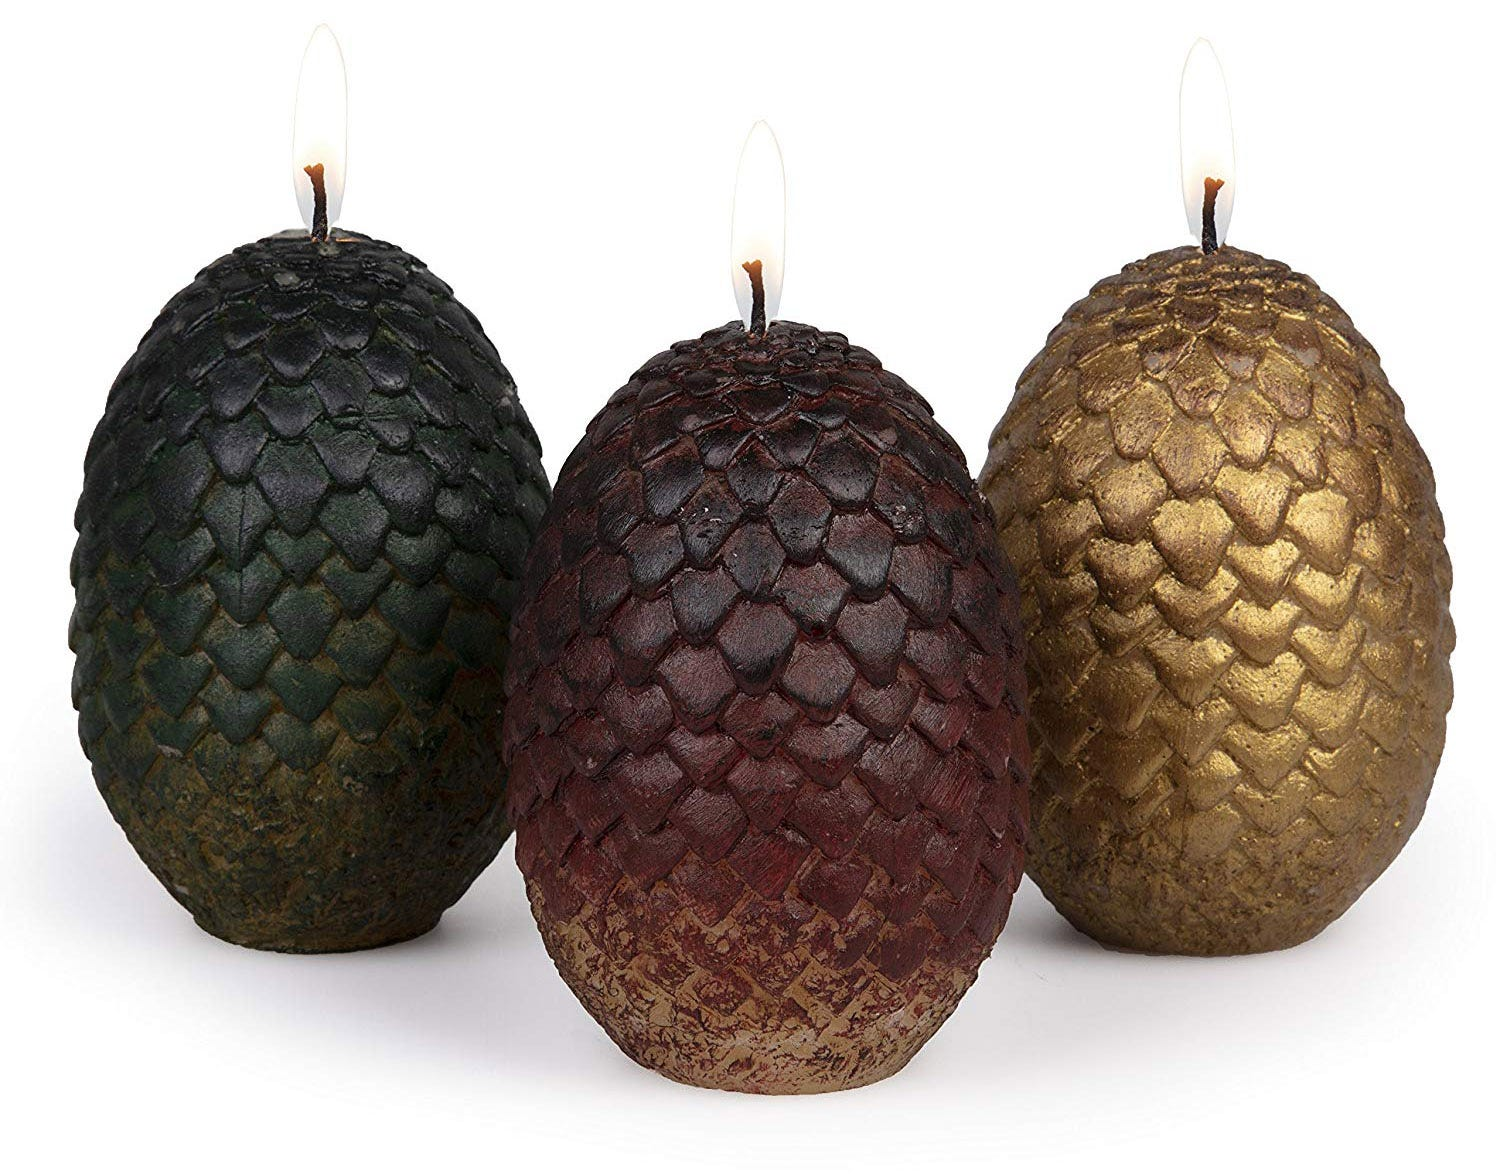 These candles are sculpted like the dragon eggs from season one.